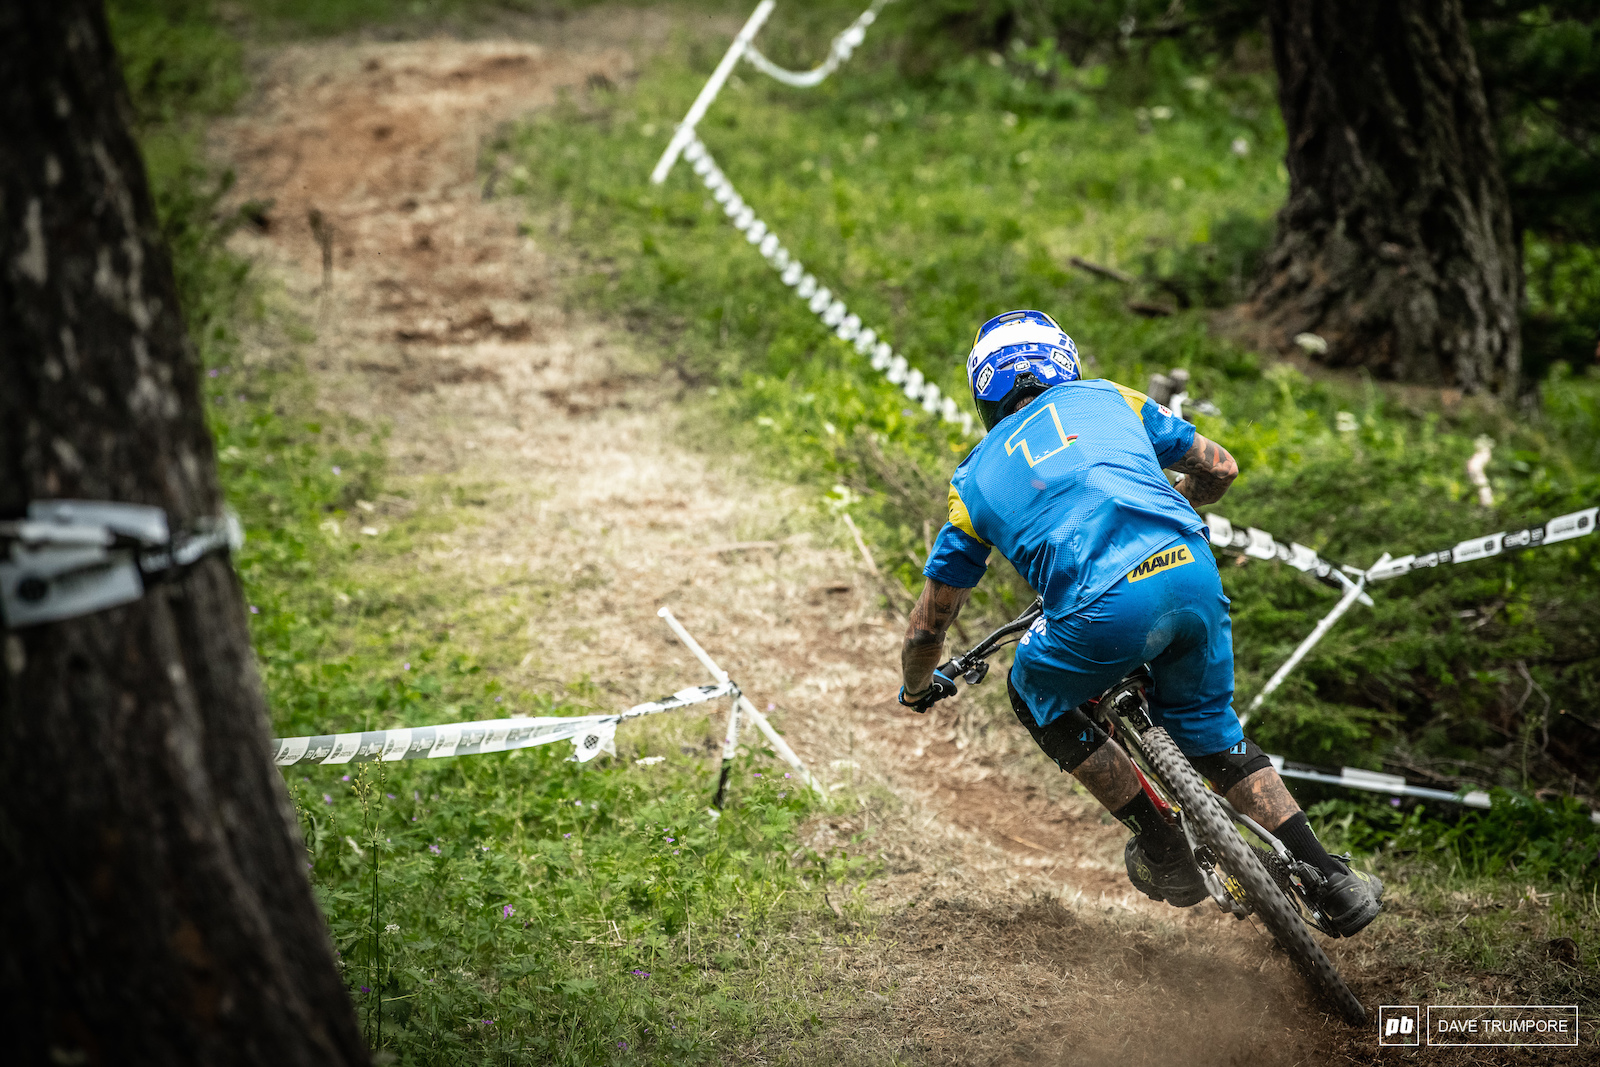 Sam Hill puled himself all the way back to 12th after being n the mid 30 s after day 1